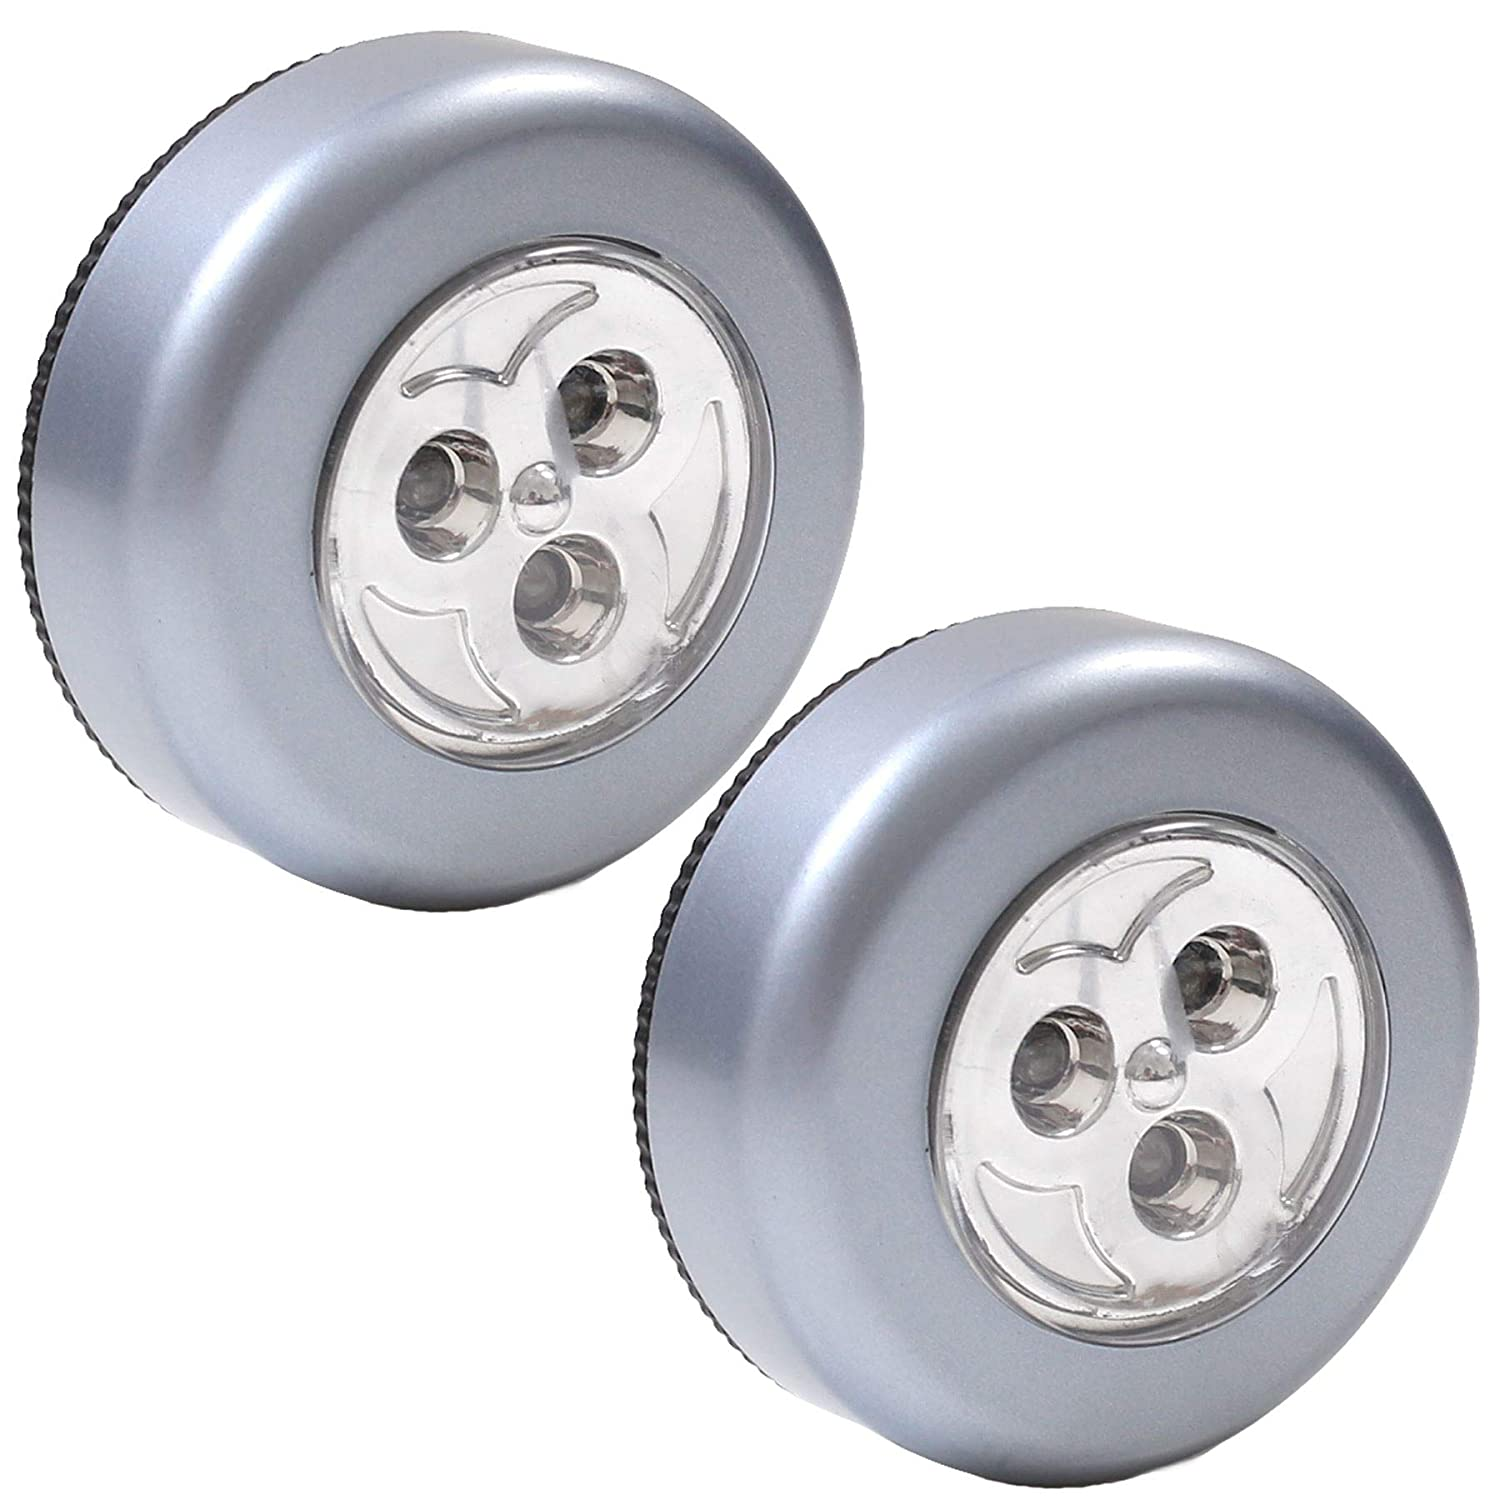 2X Bright LED Push Button Lights Self Stick Adhesive Backing Spot Lamp White Hinge